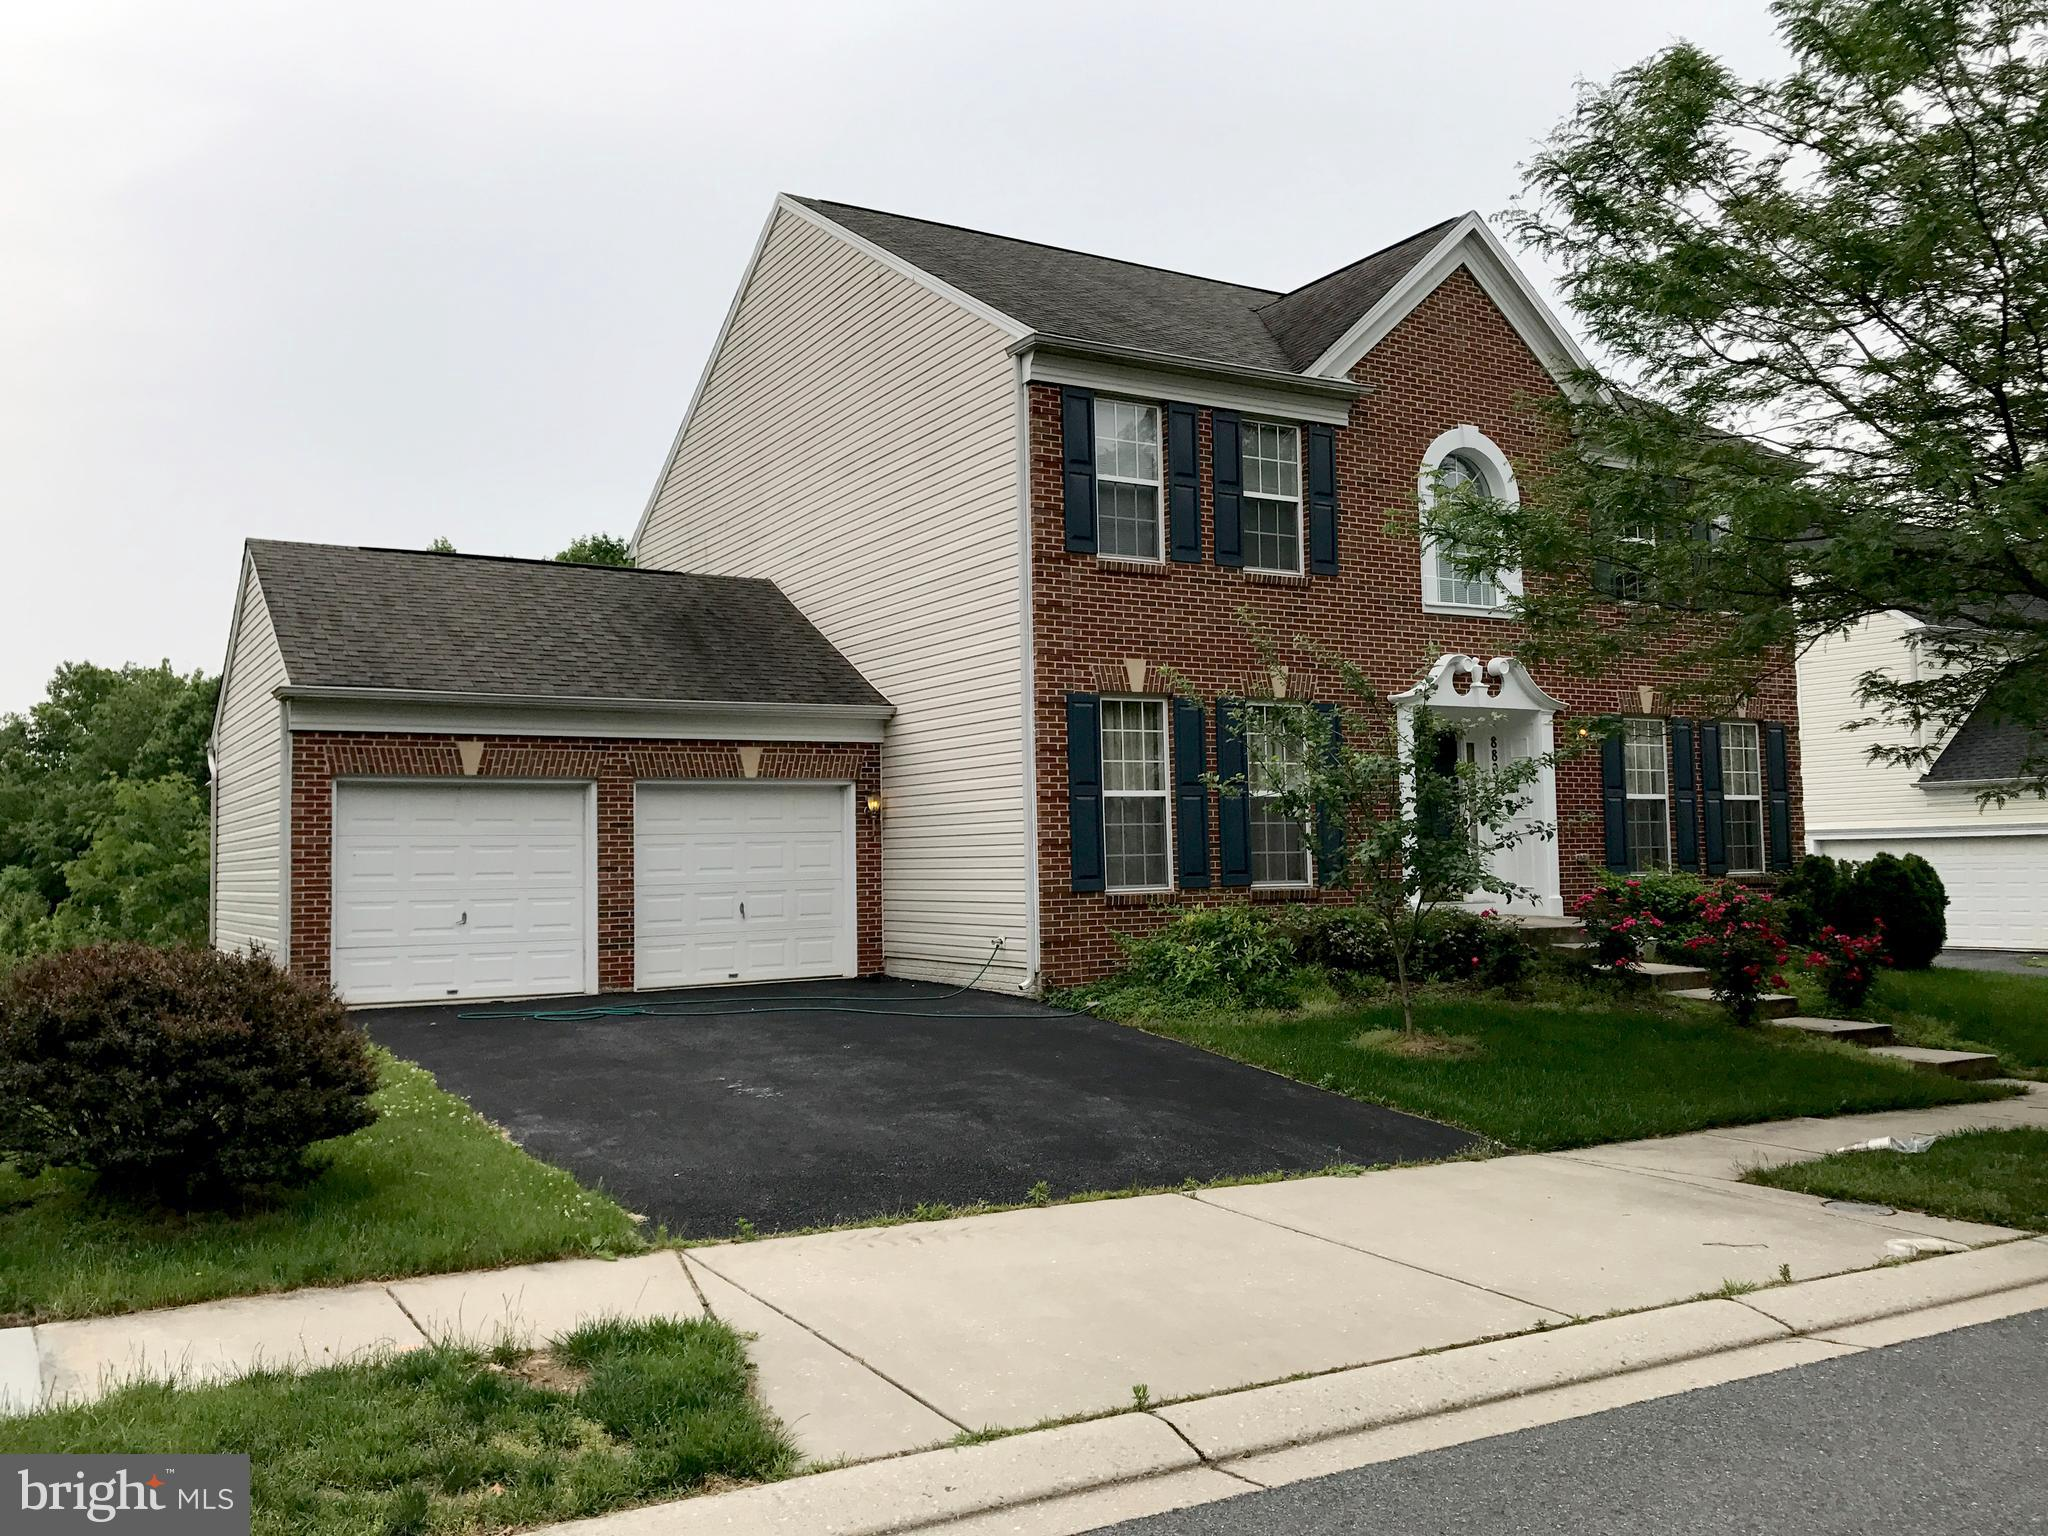 8807 BAILEYS COURT, PERRY HALL, MD 21128